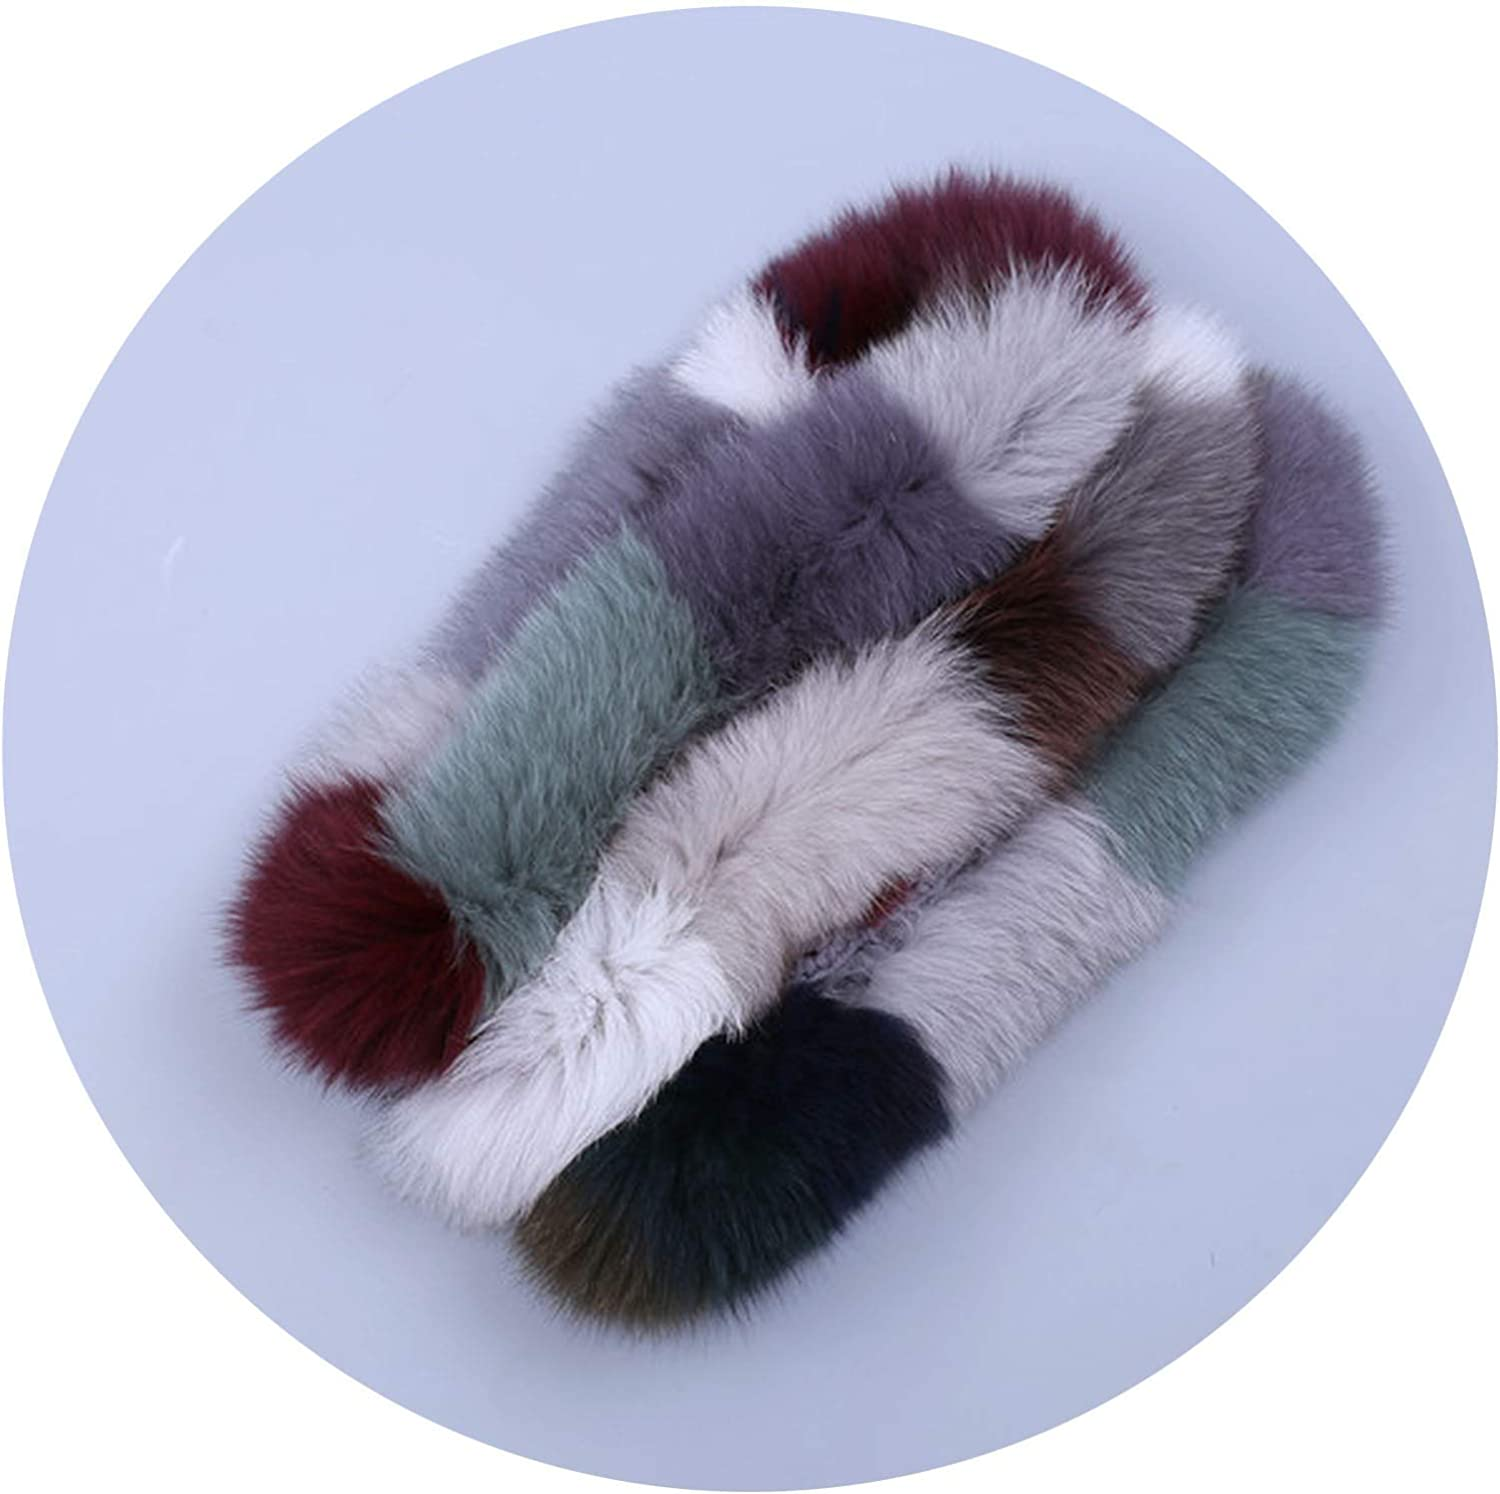 Brand New Genuine Real Fox Fur Women's Lady Fur Scarf Scarves Ring Cowl Snood Cirle Infinity Scarf Wraps Shawl Multicolour,Multicolor in random